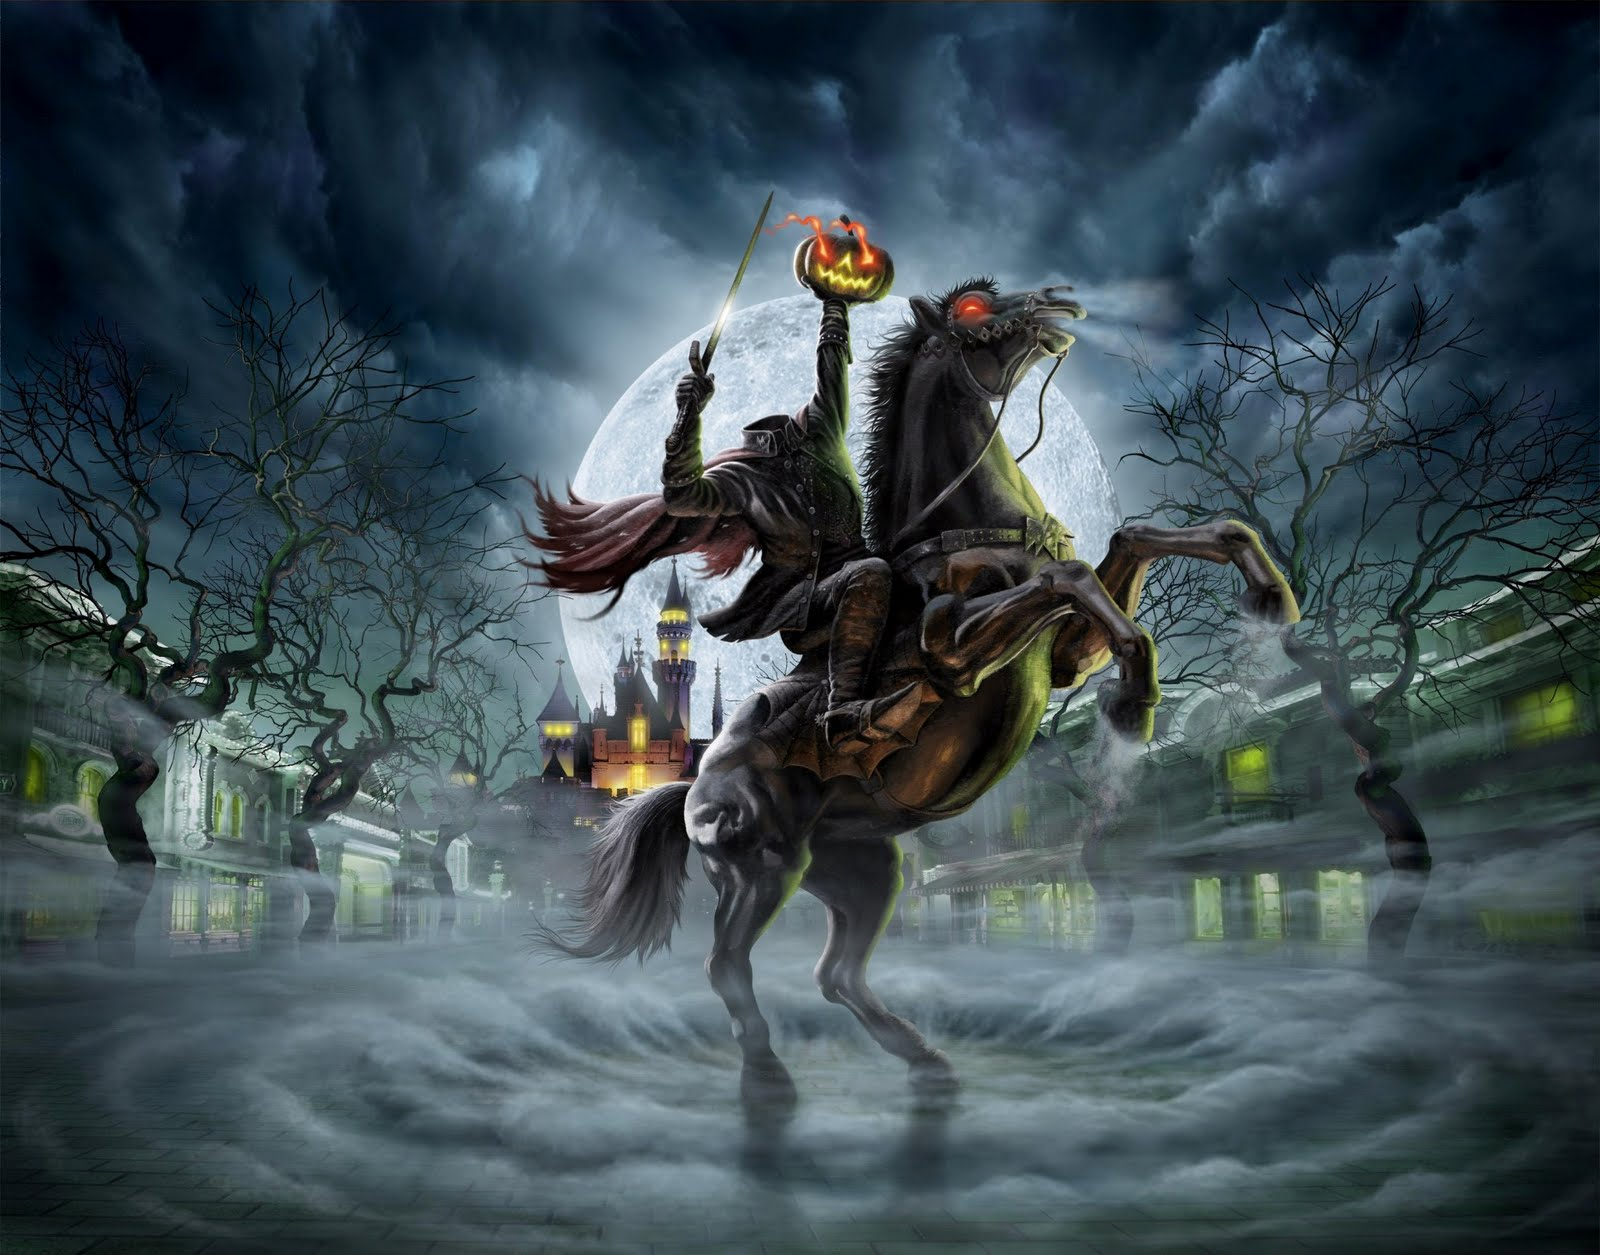 Must see Wallpaper Horse Halloween - latest?cb\u003d20140311040813  Pic_182071.jpg/revision/latest?cb\u003d20140311040813